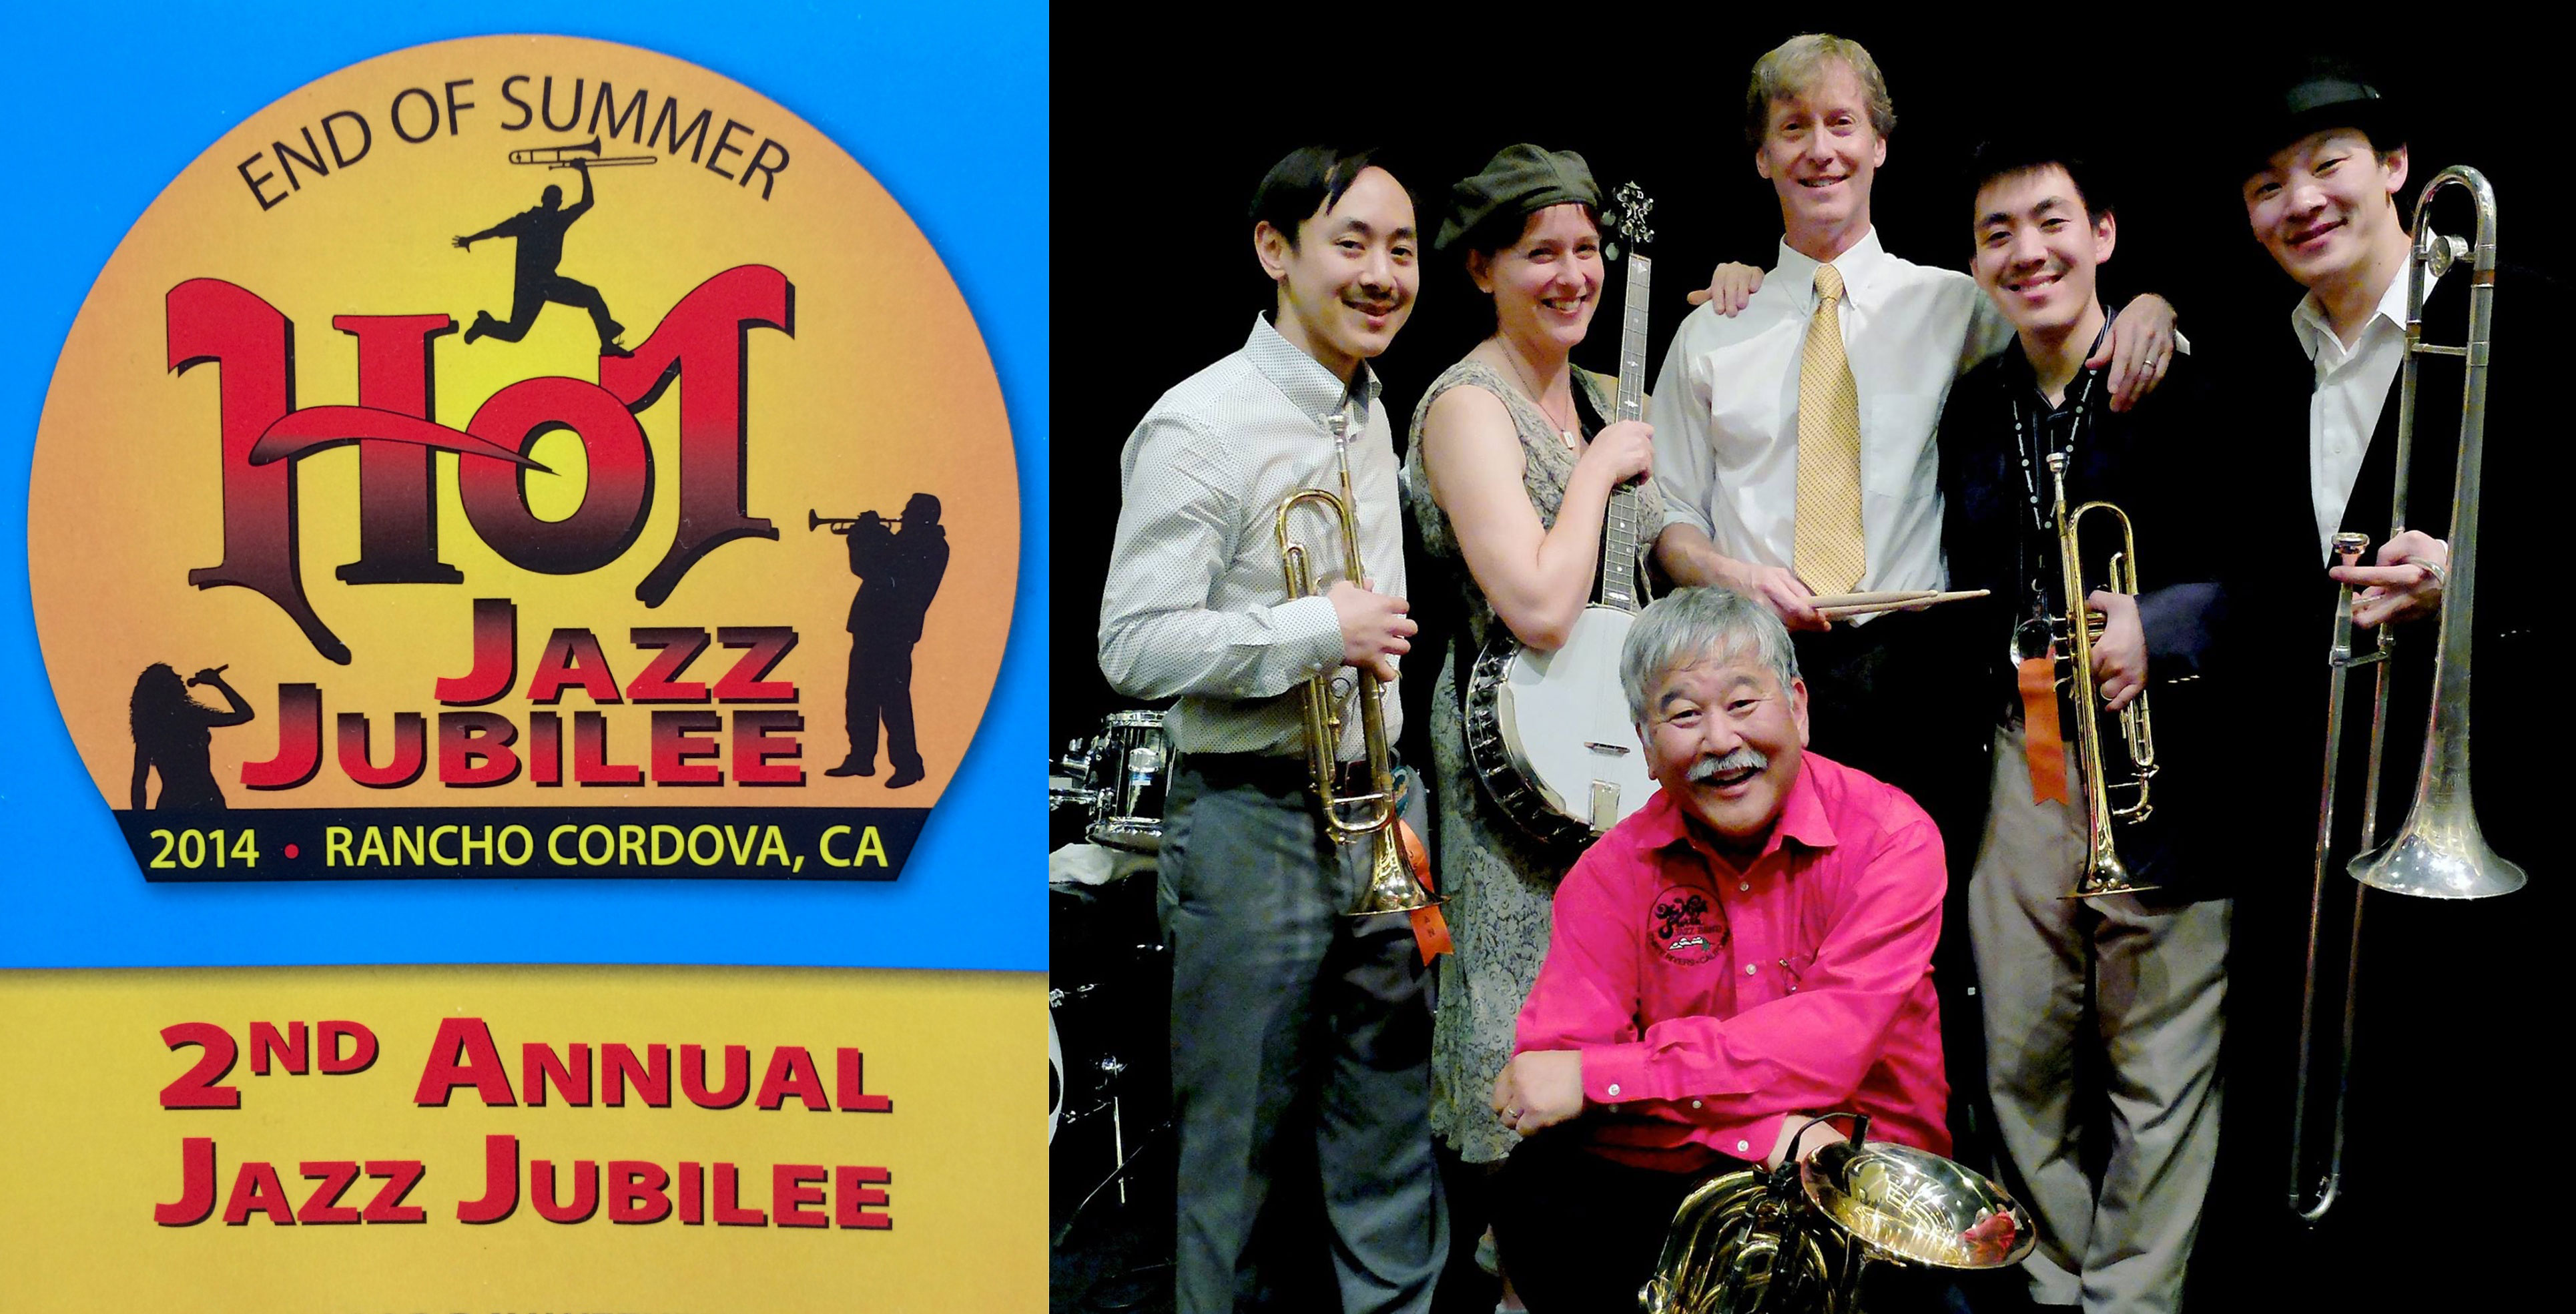 Hot Jazz Jubilee 2014